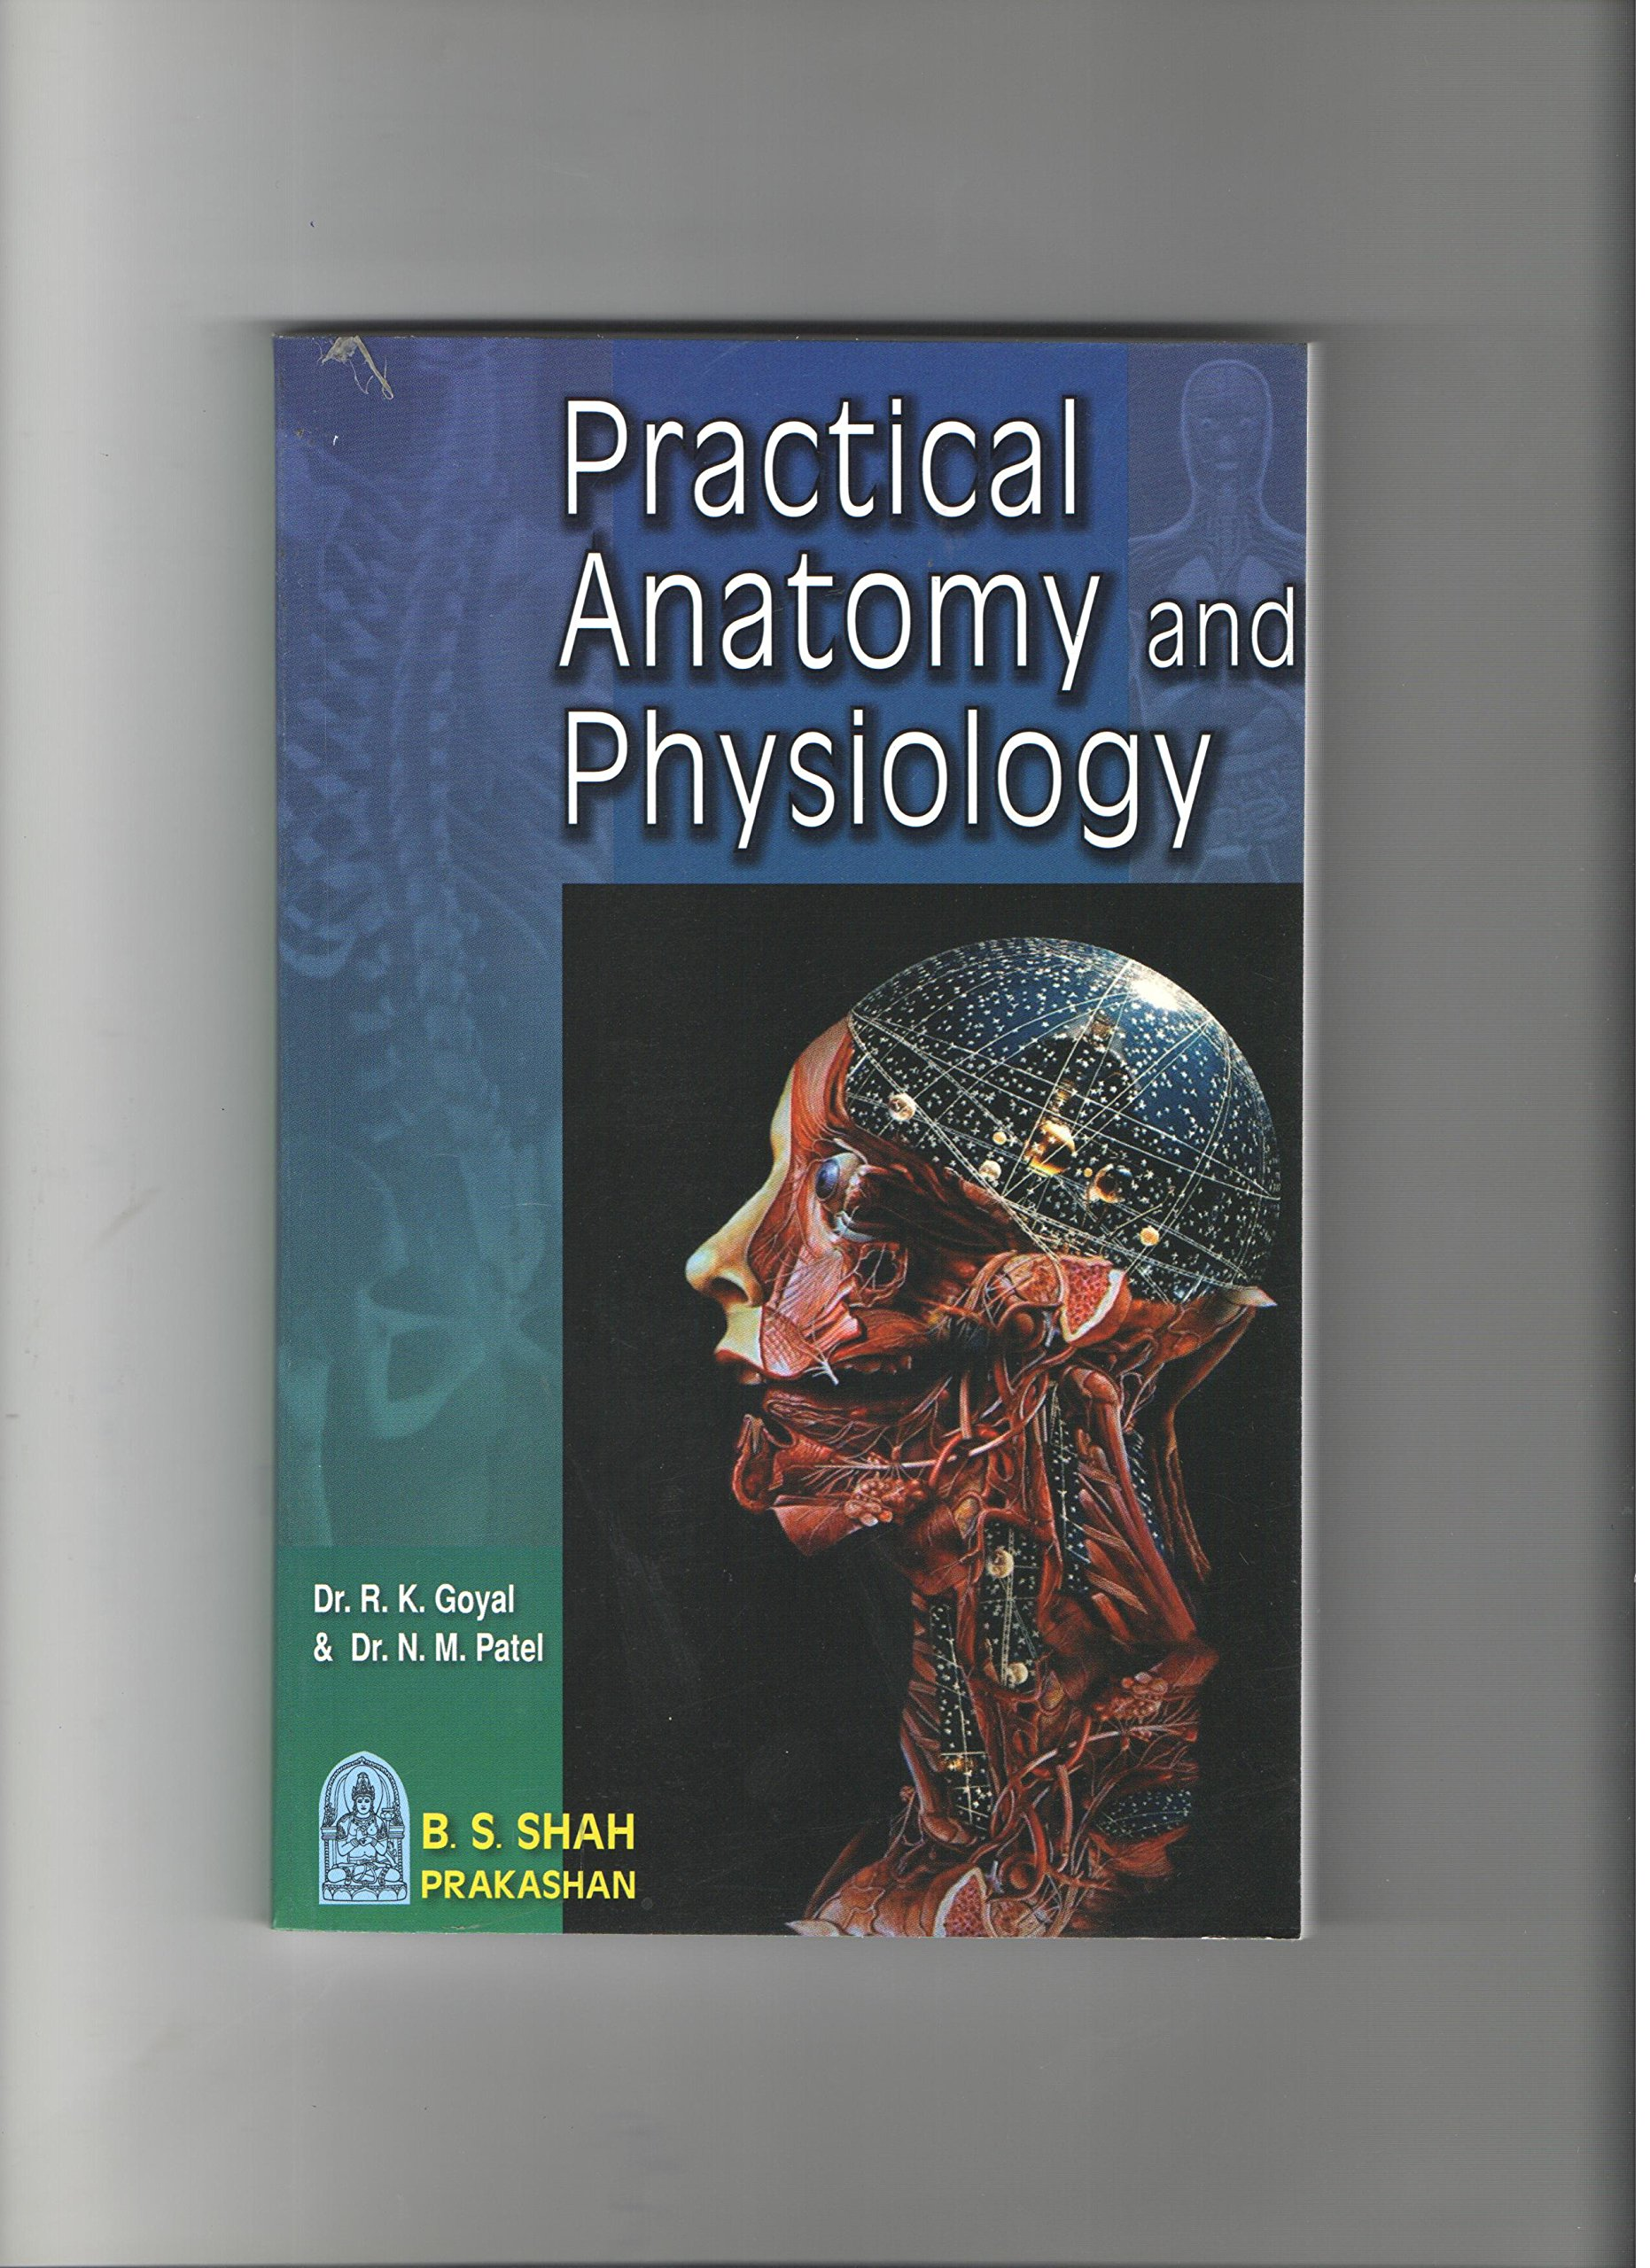 Amazon.in: Buy Practical Anatomy And Physiology Book Online at Low ...